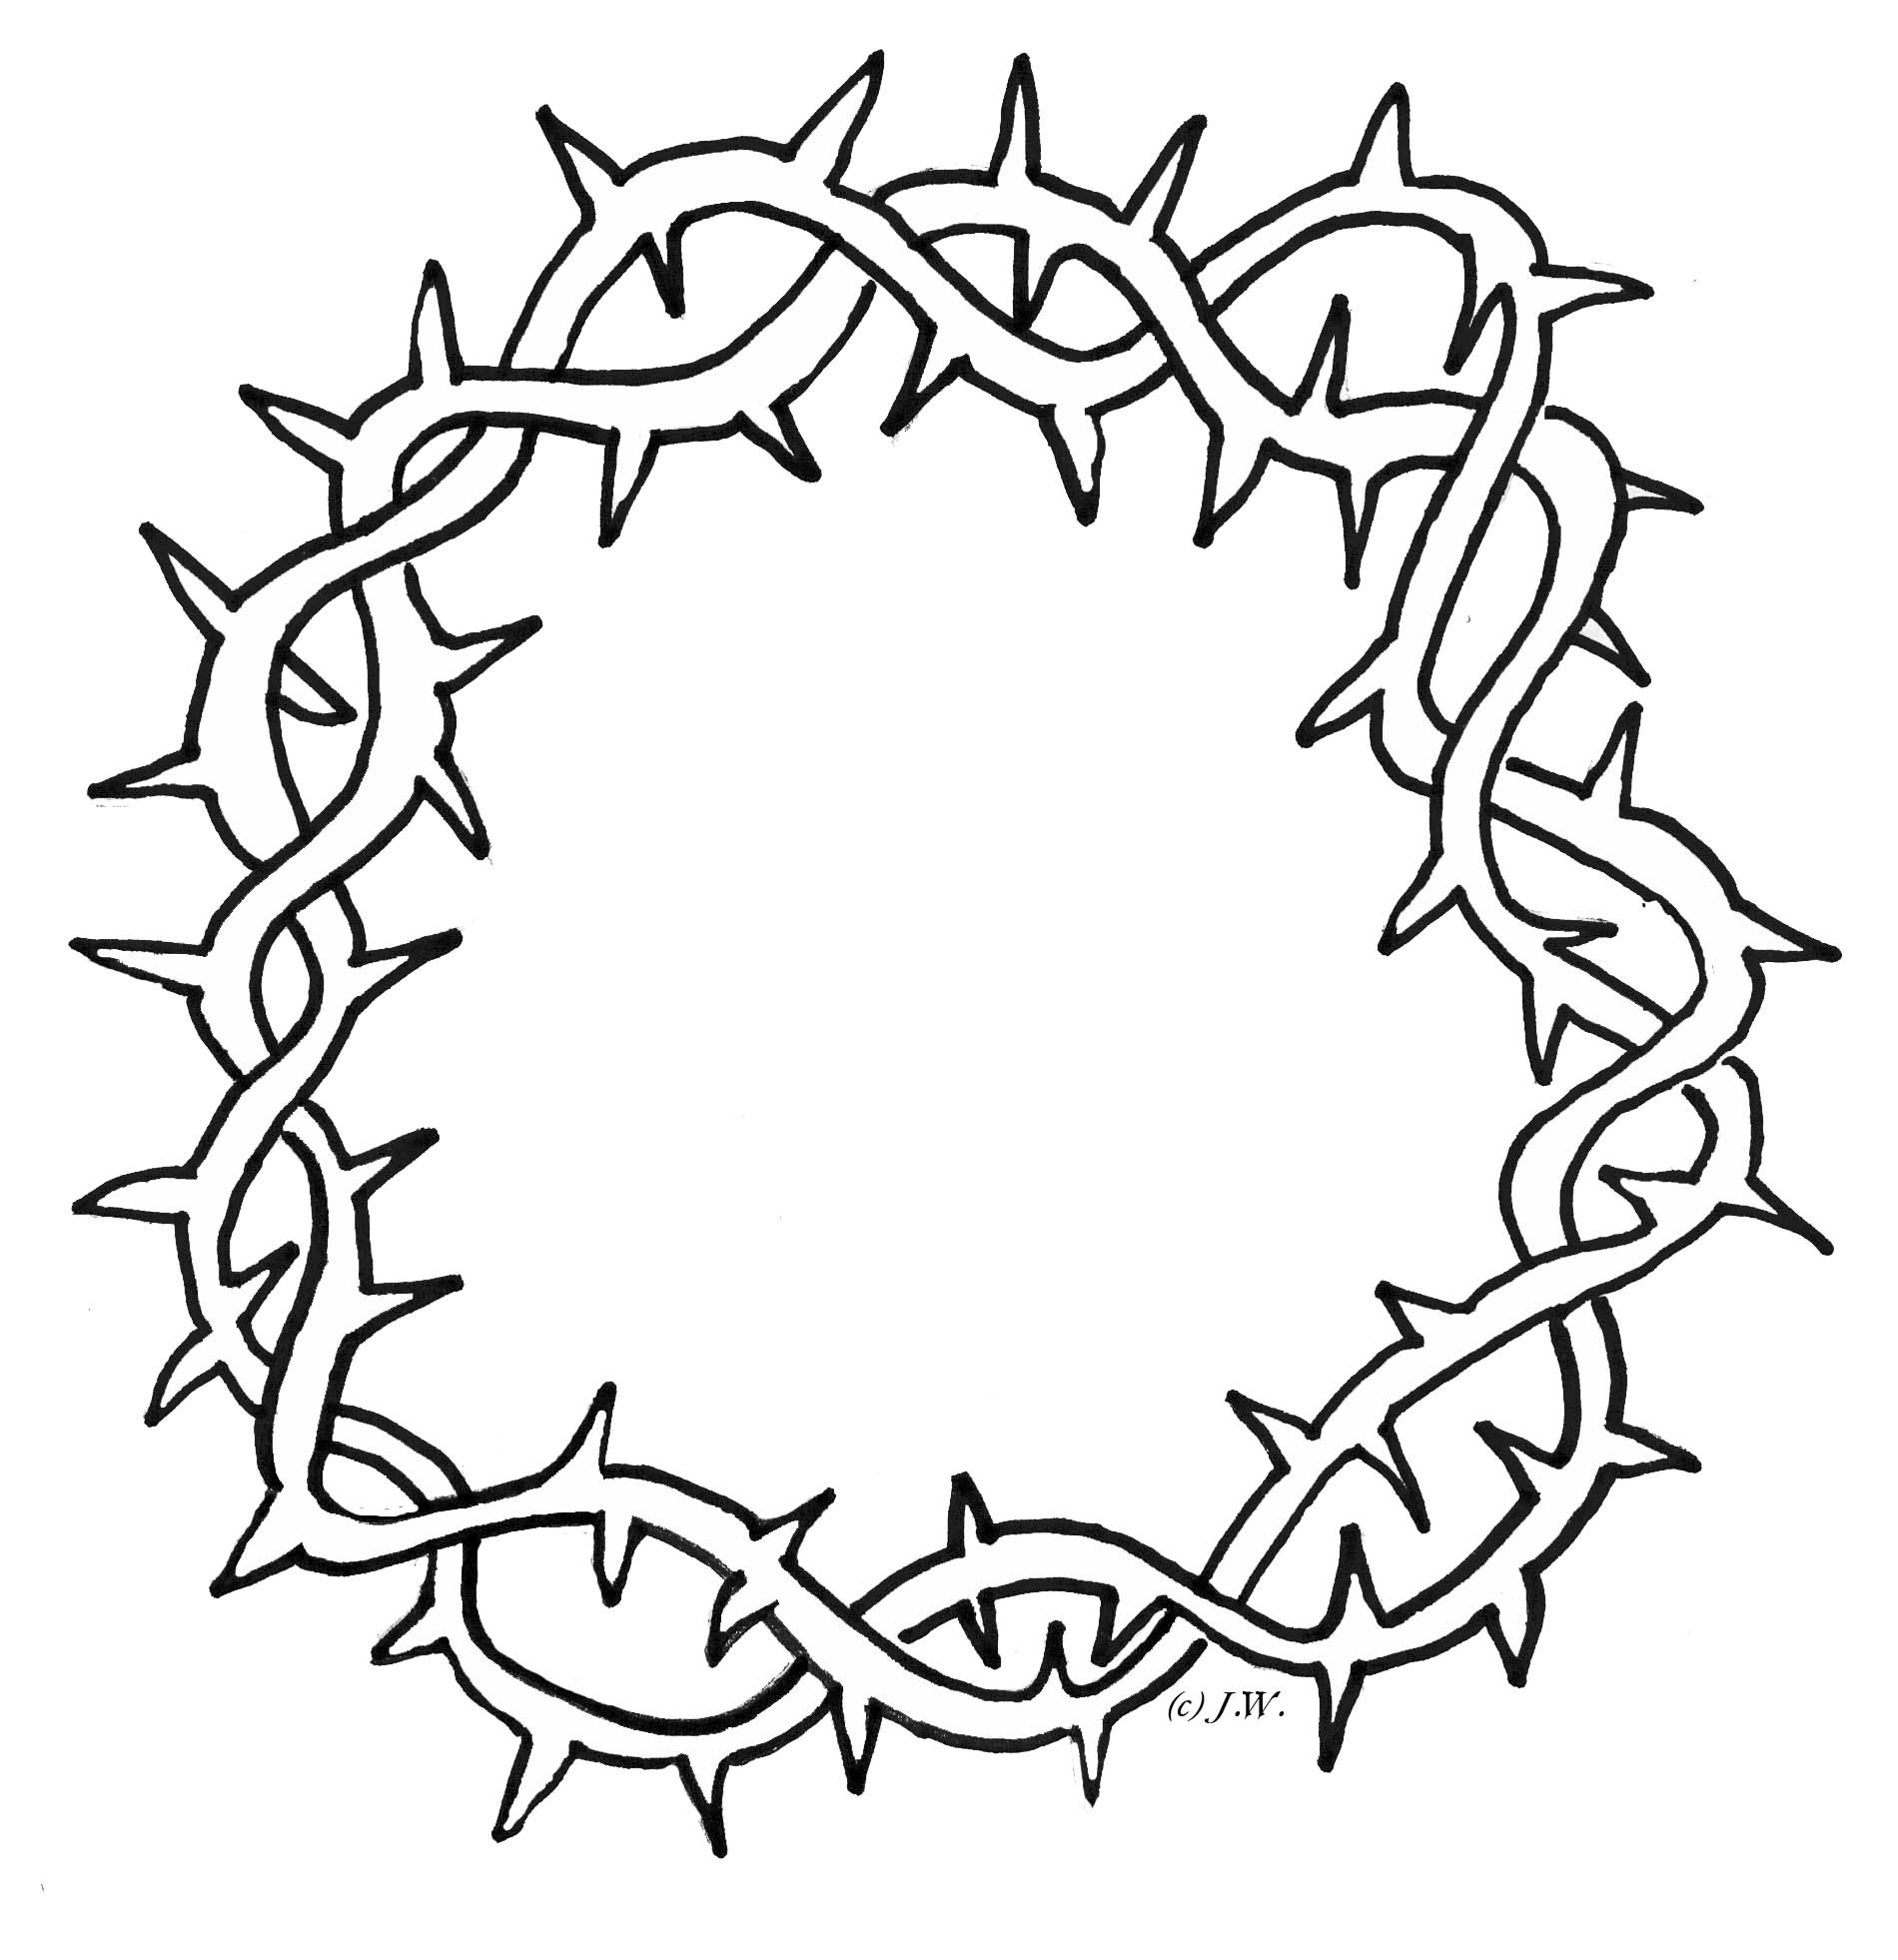 Free Thorn Cliparts, Download Free Clip Art, Free Clip Art.